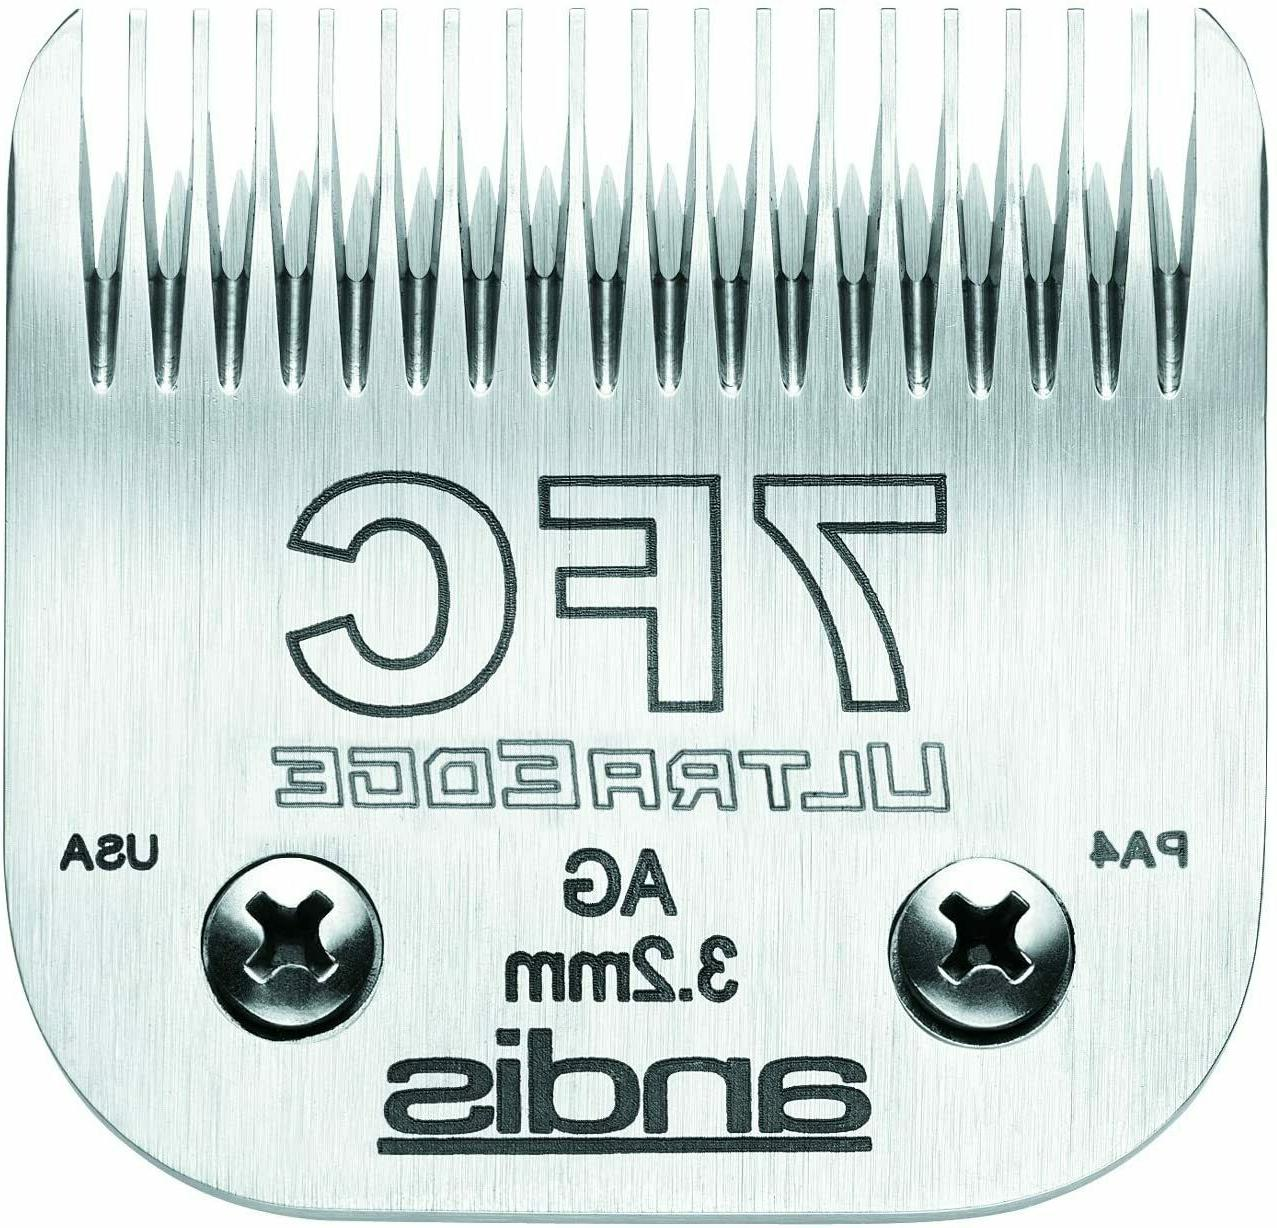 ultra edge detachable grooming blade size 7fc